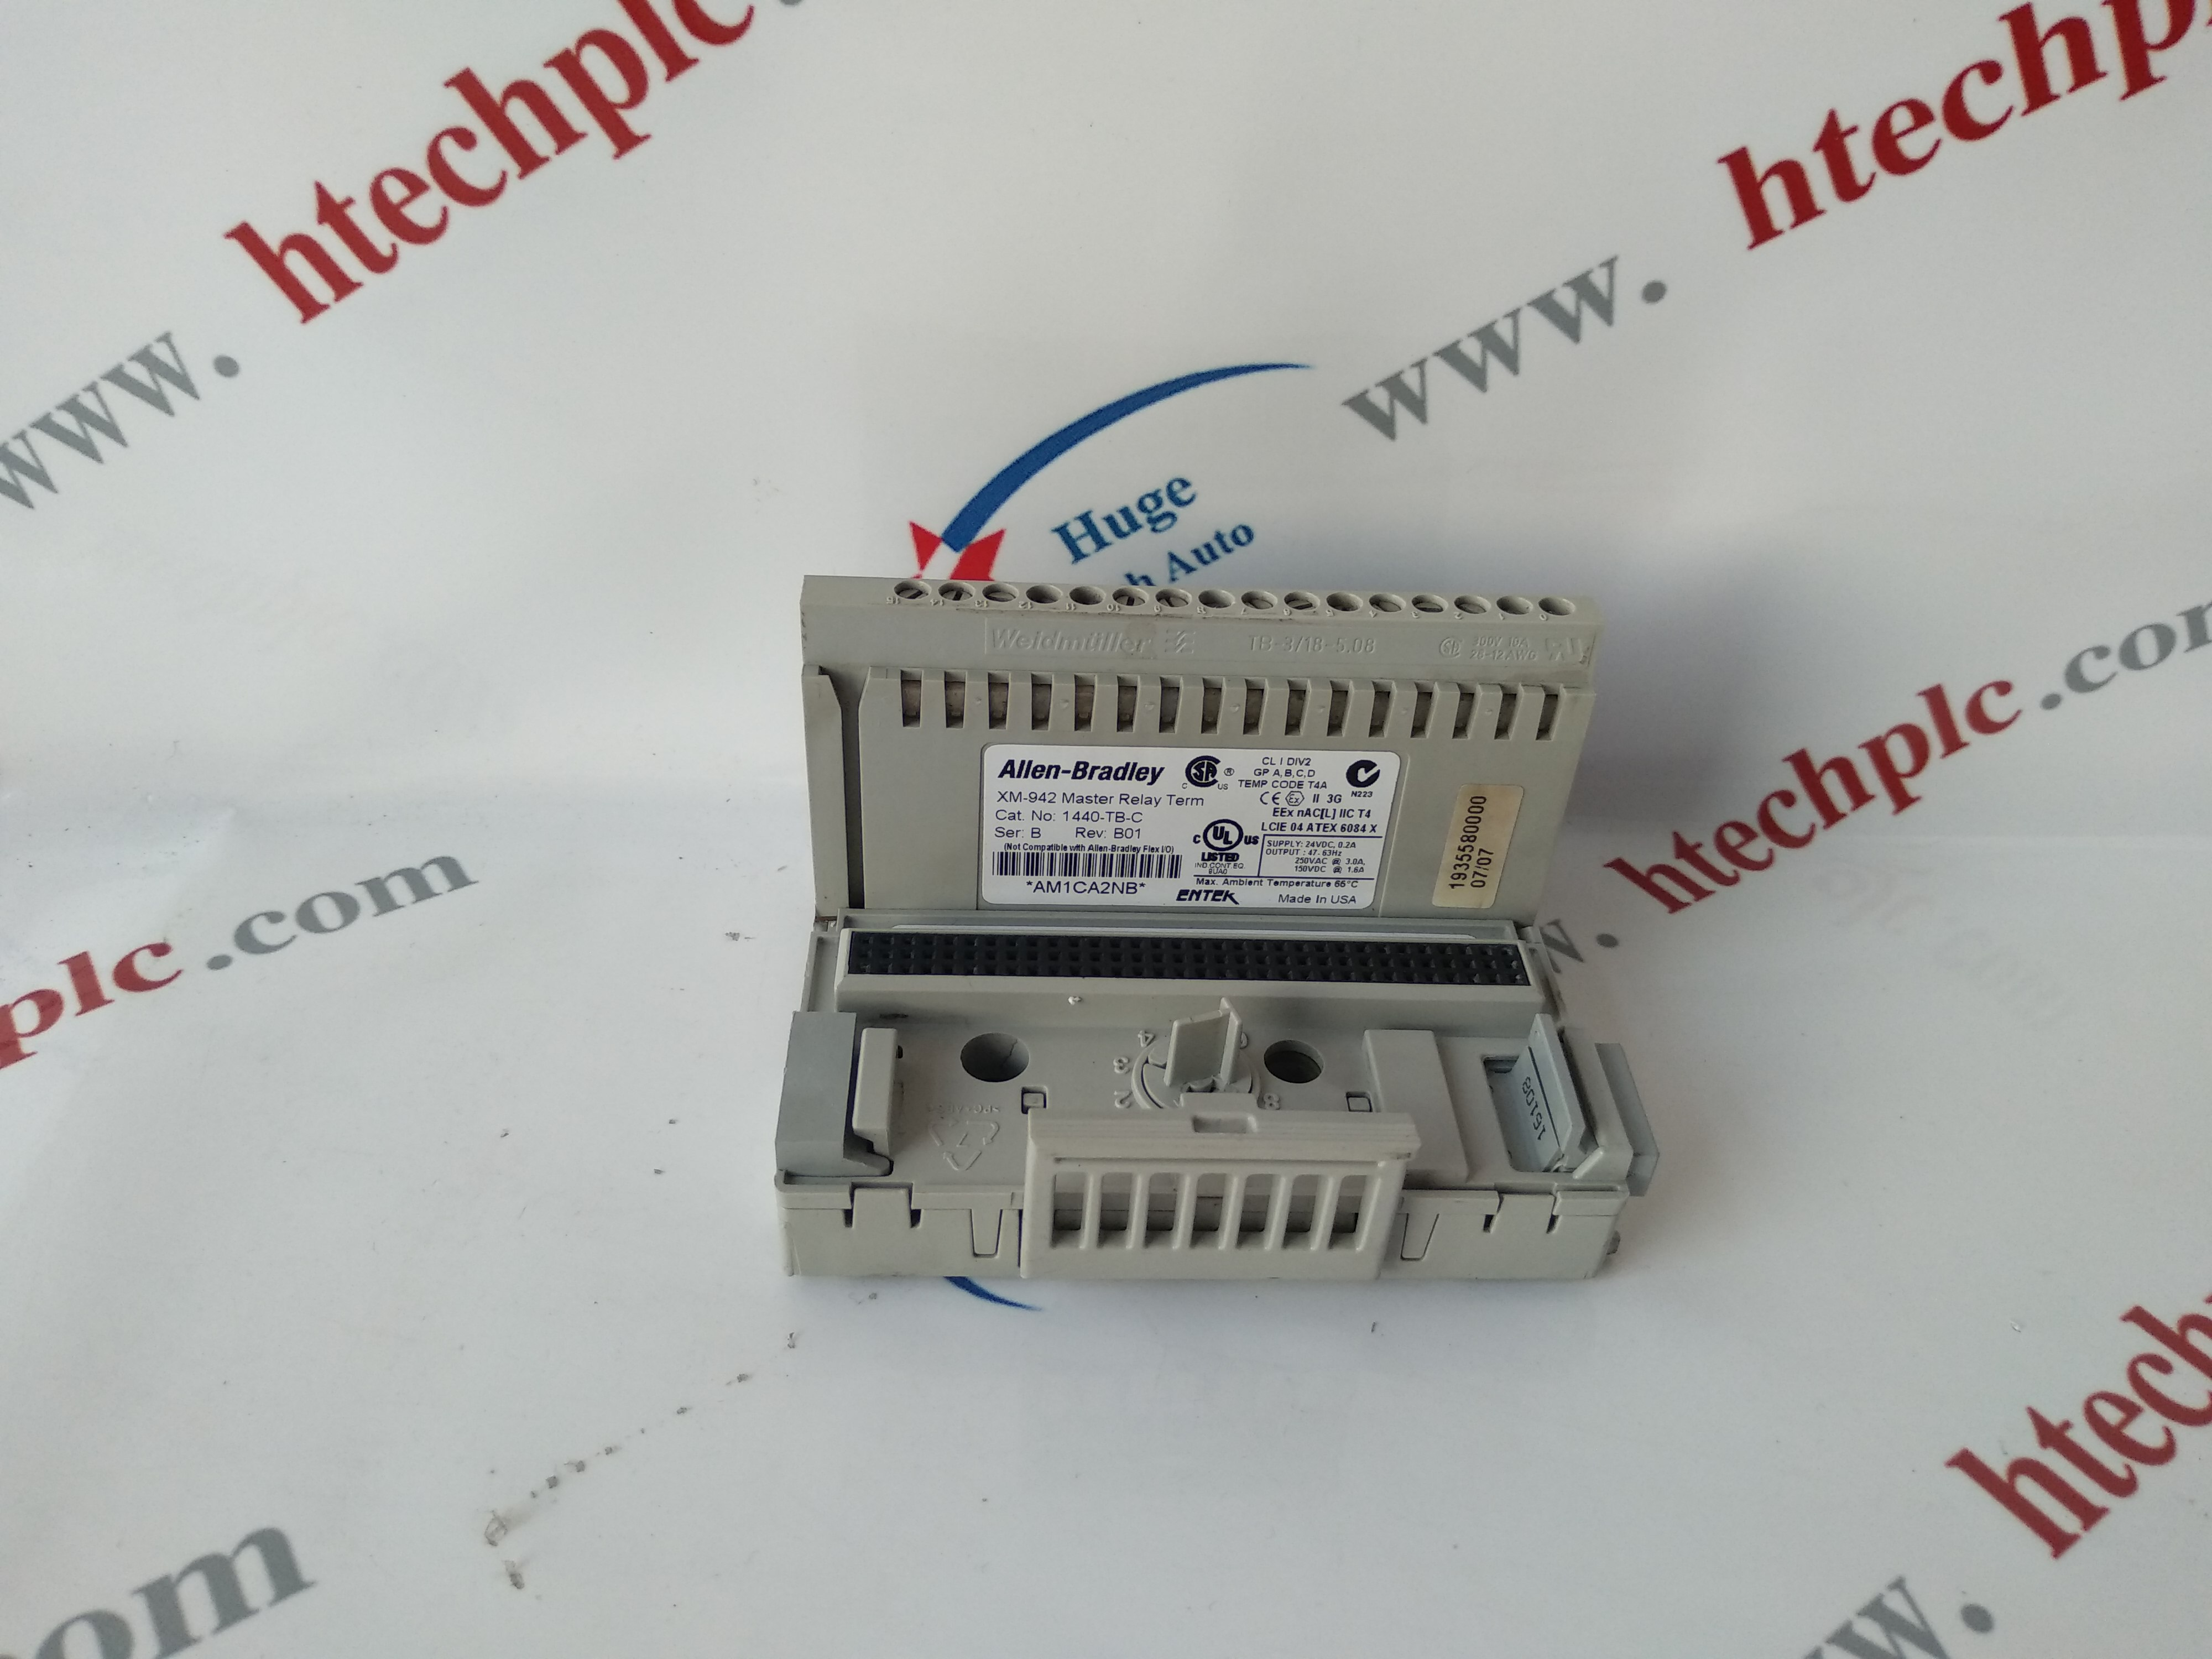 Allen Bradley 1756-OB32 brand new PLC DCS TSI system spare parts in stock